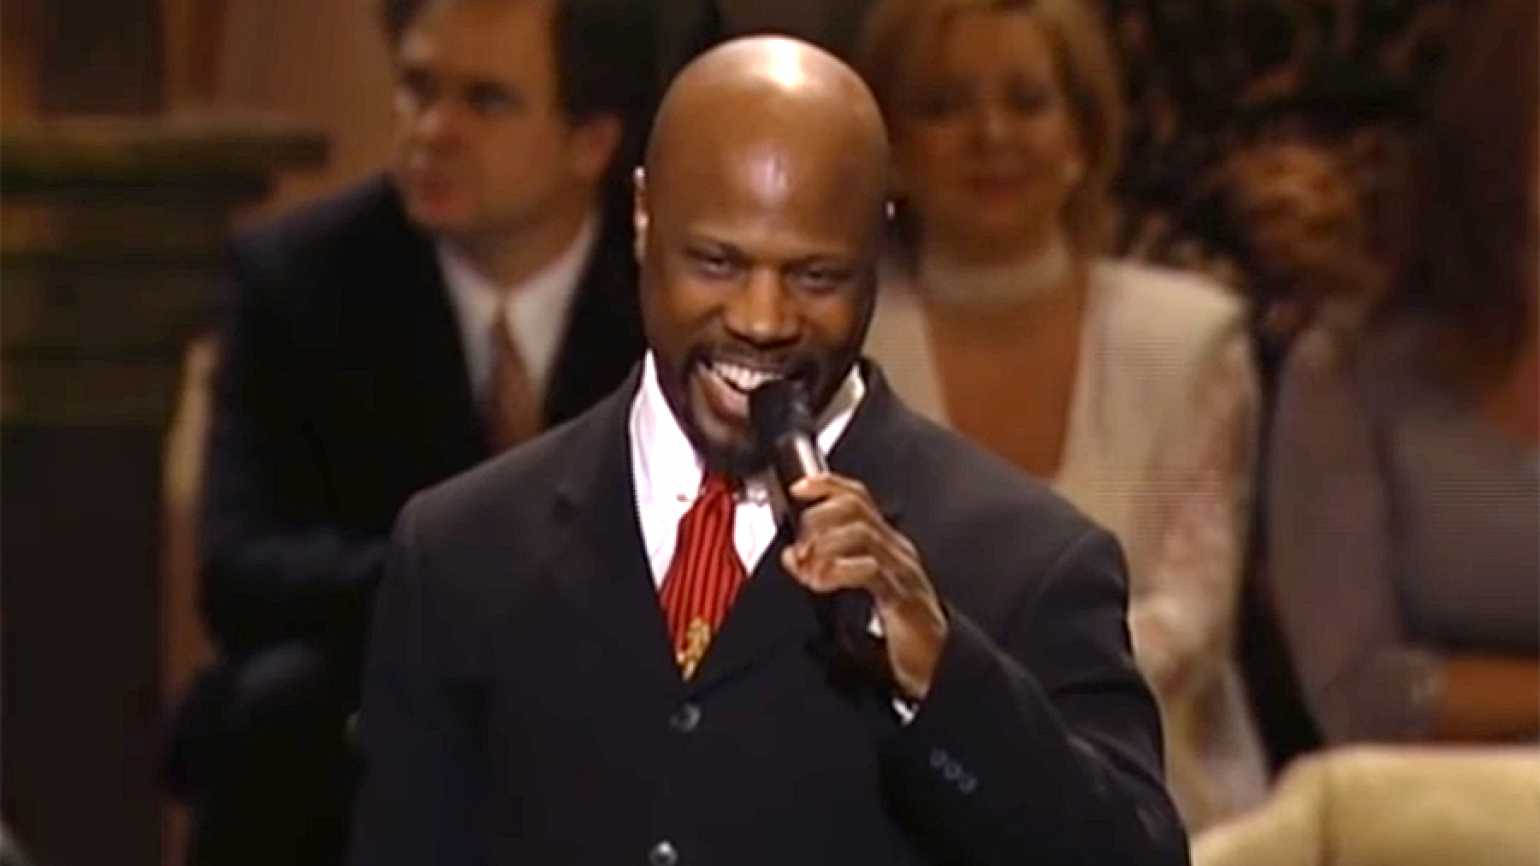 Acclaimed gospel singer Wintley Phipps performs at Carnegie Hall